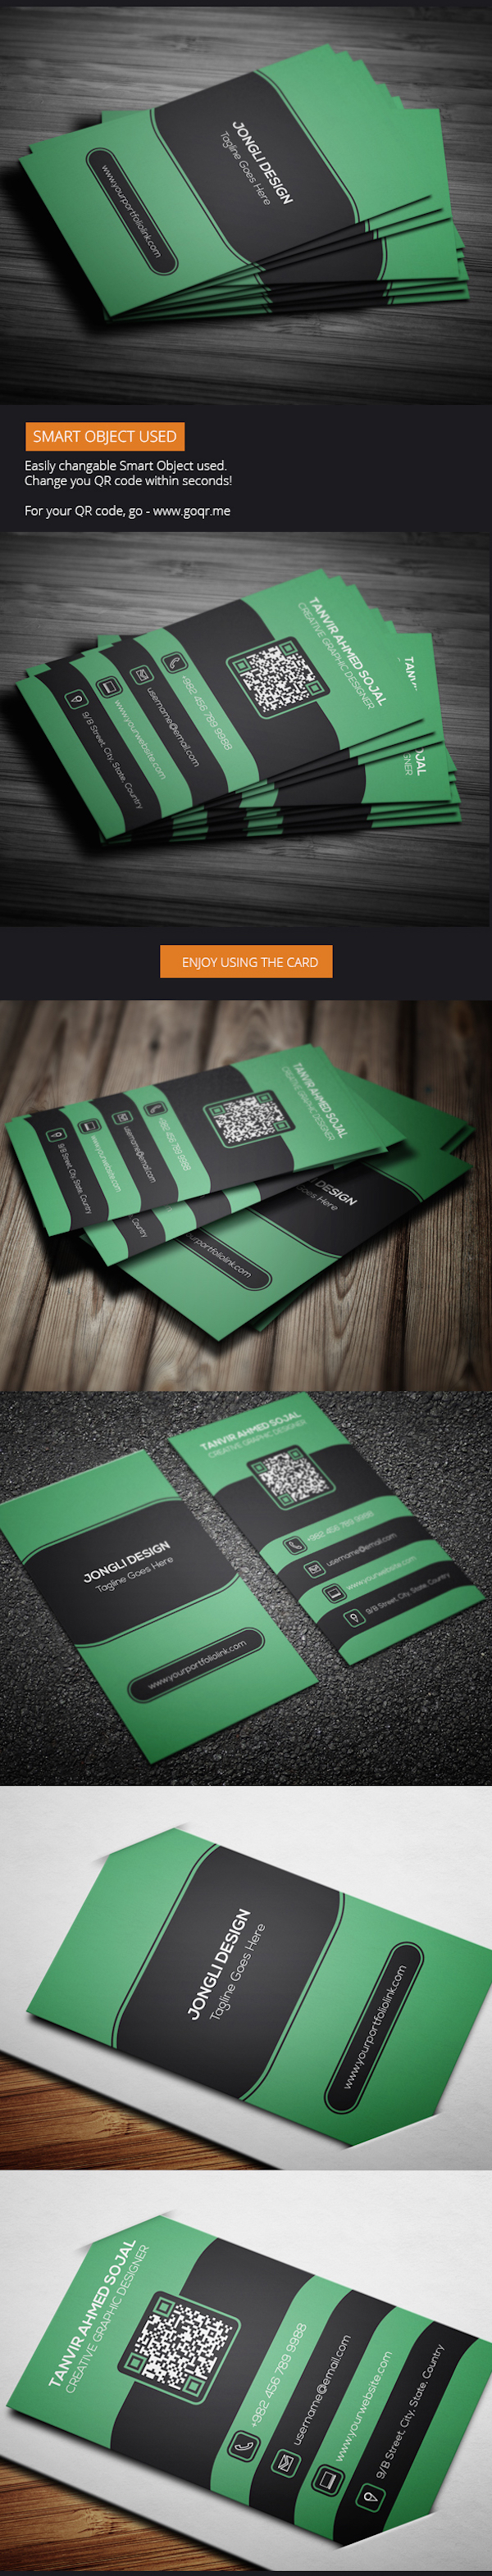 40 latest free business card psd templates devzum free business card psd templates reheart Gallery